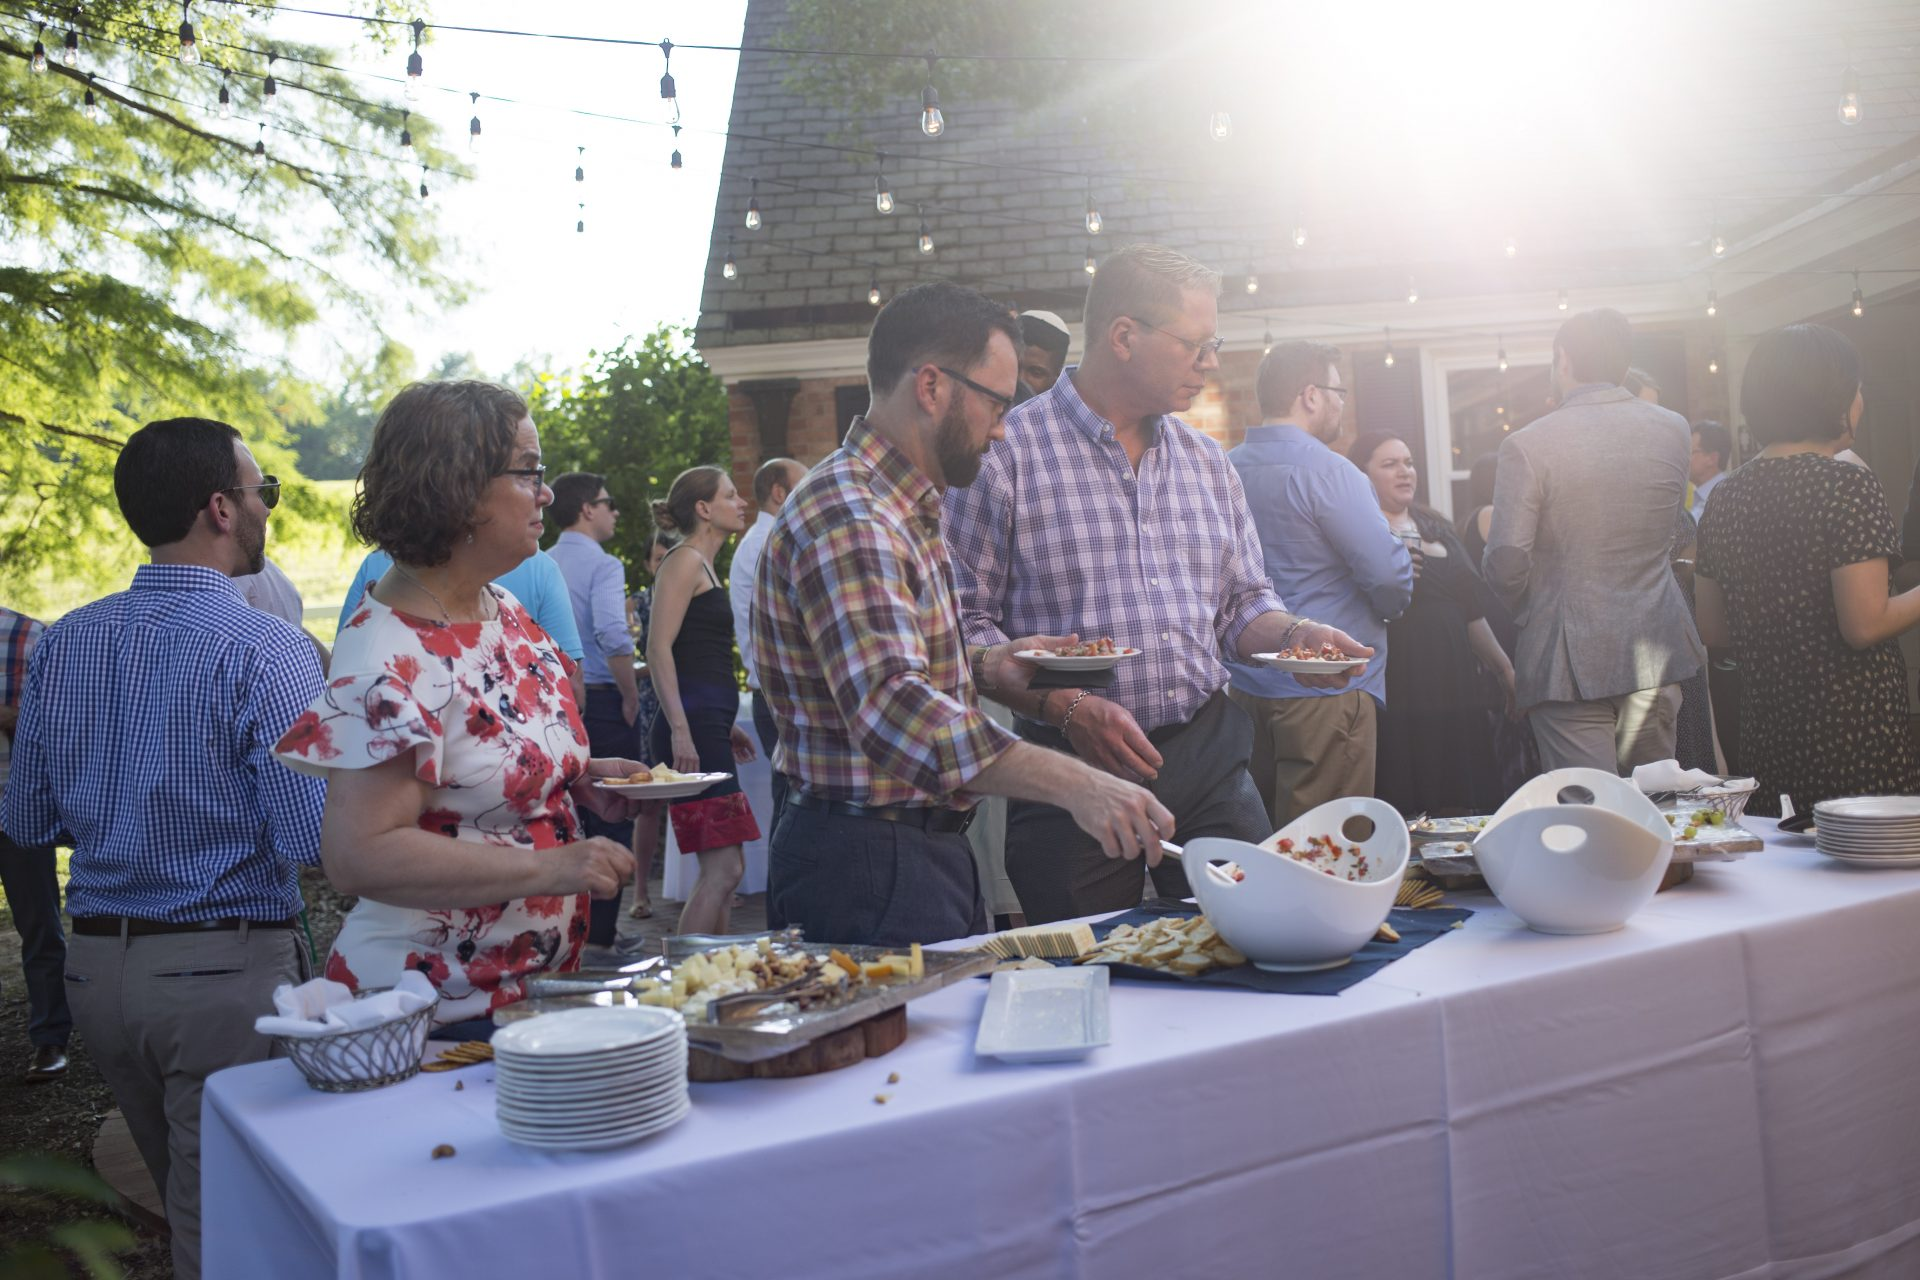 Event attendees getting food from an outdoor buffet at an event catered by Bleu Events